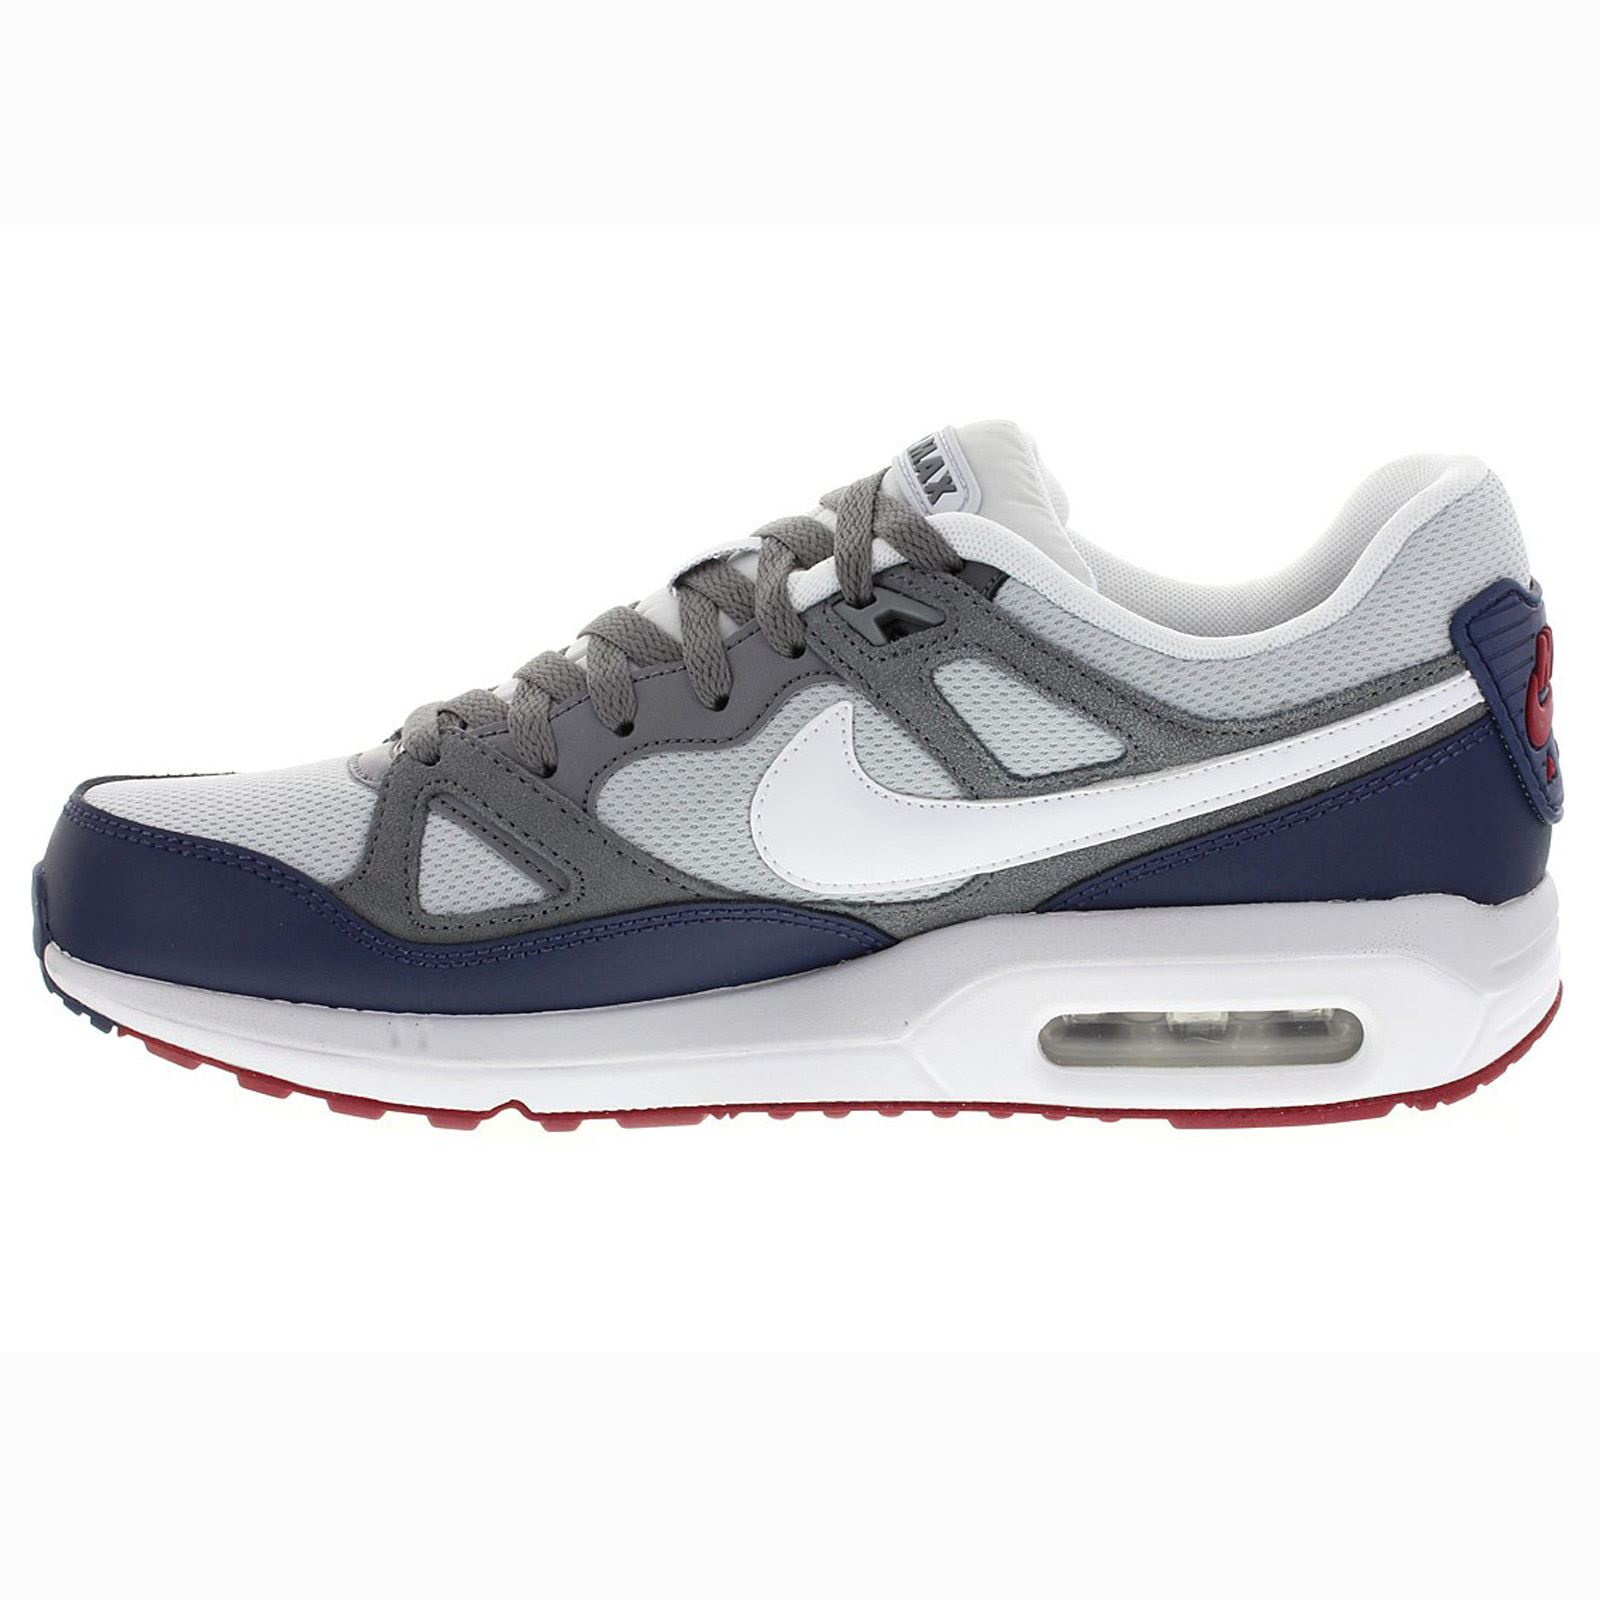 abhwn Nike Air Max Span Text Leather Mens Trainers | eBay